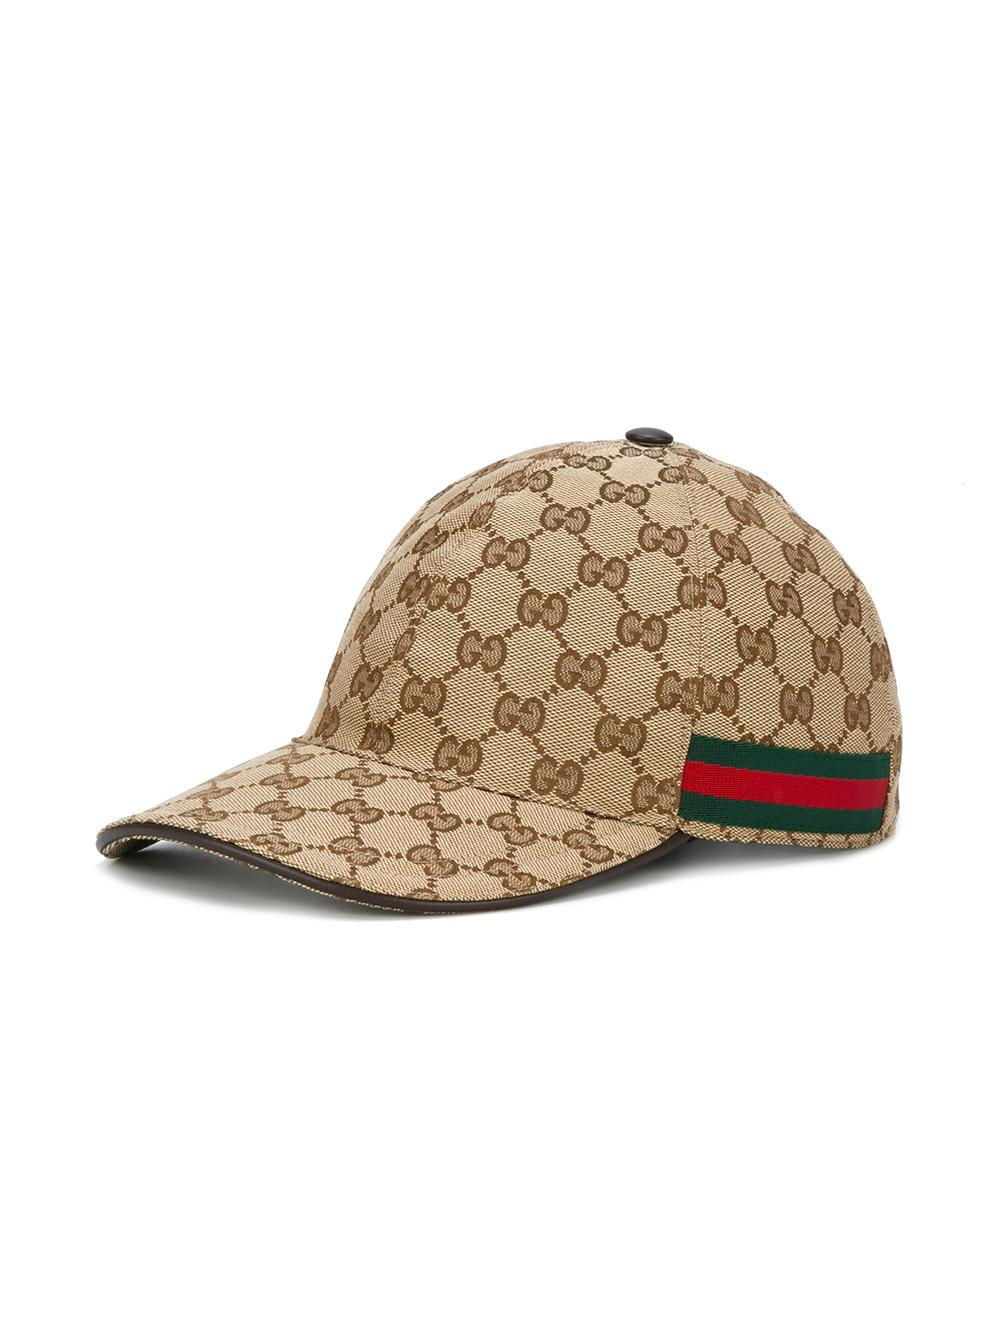 lyst gucci original gg supreme baseball cap in natural. Black Bedroom Furniture Sets. Home Design Ideas